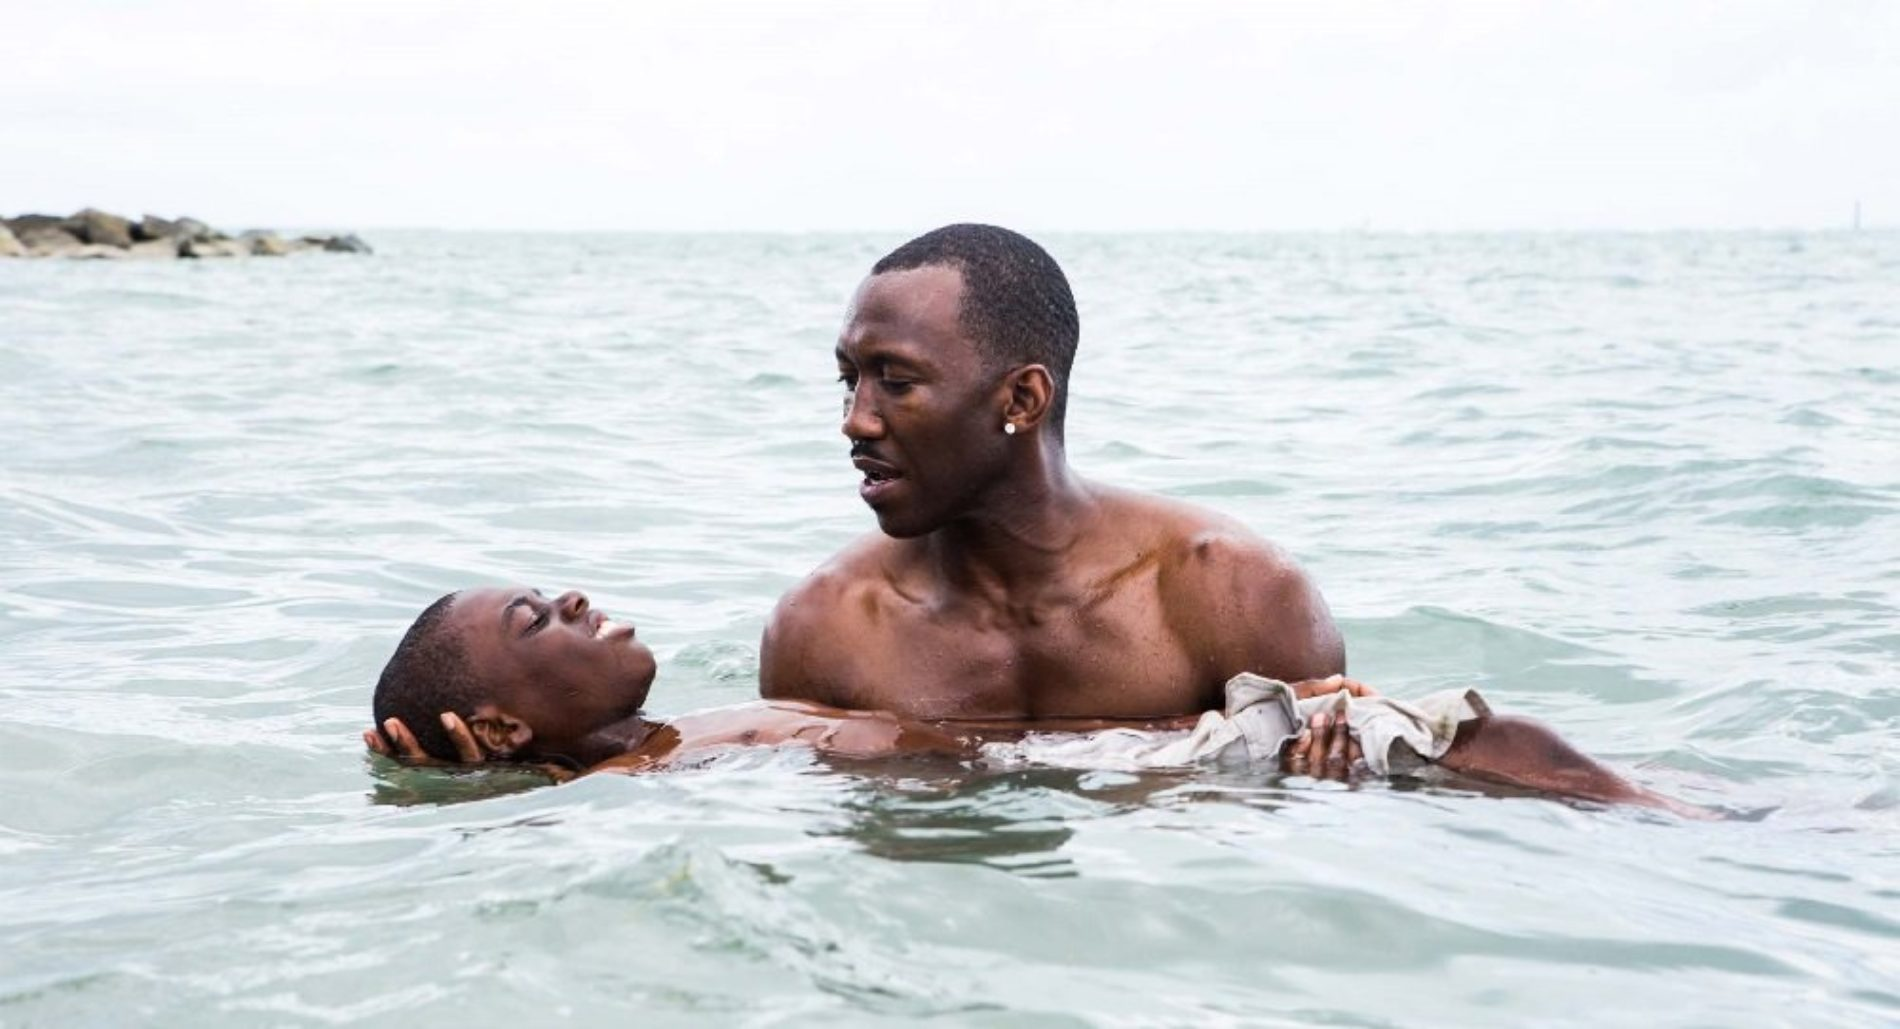 Gay Coming-Of-Age Movie 'Moonlight' Is One Of The Most Critically Acclaimed Films Of 2016